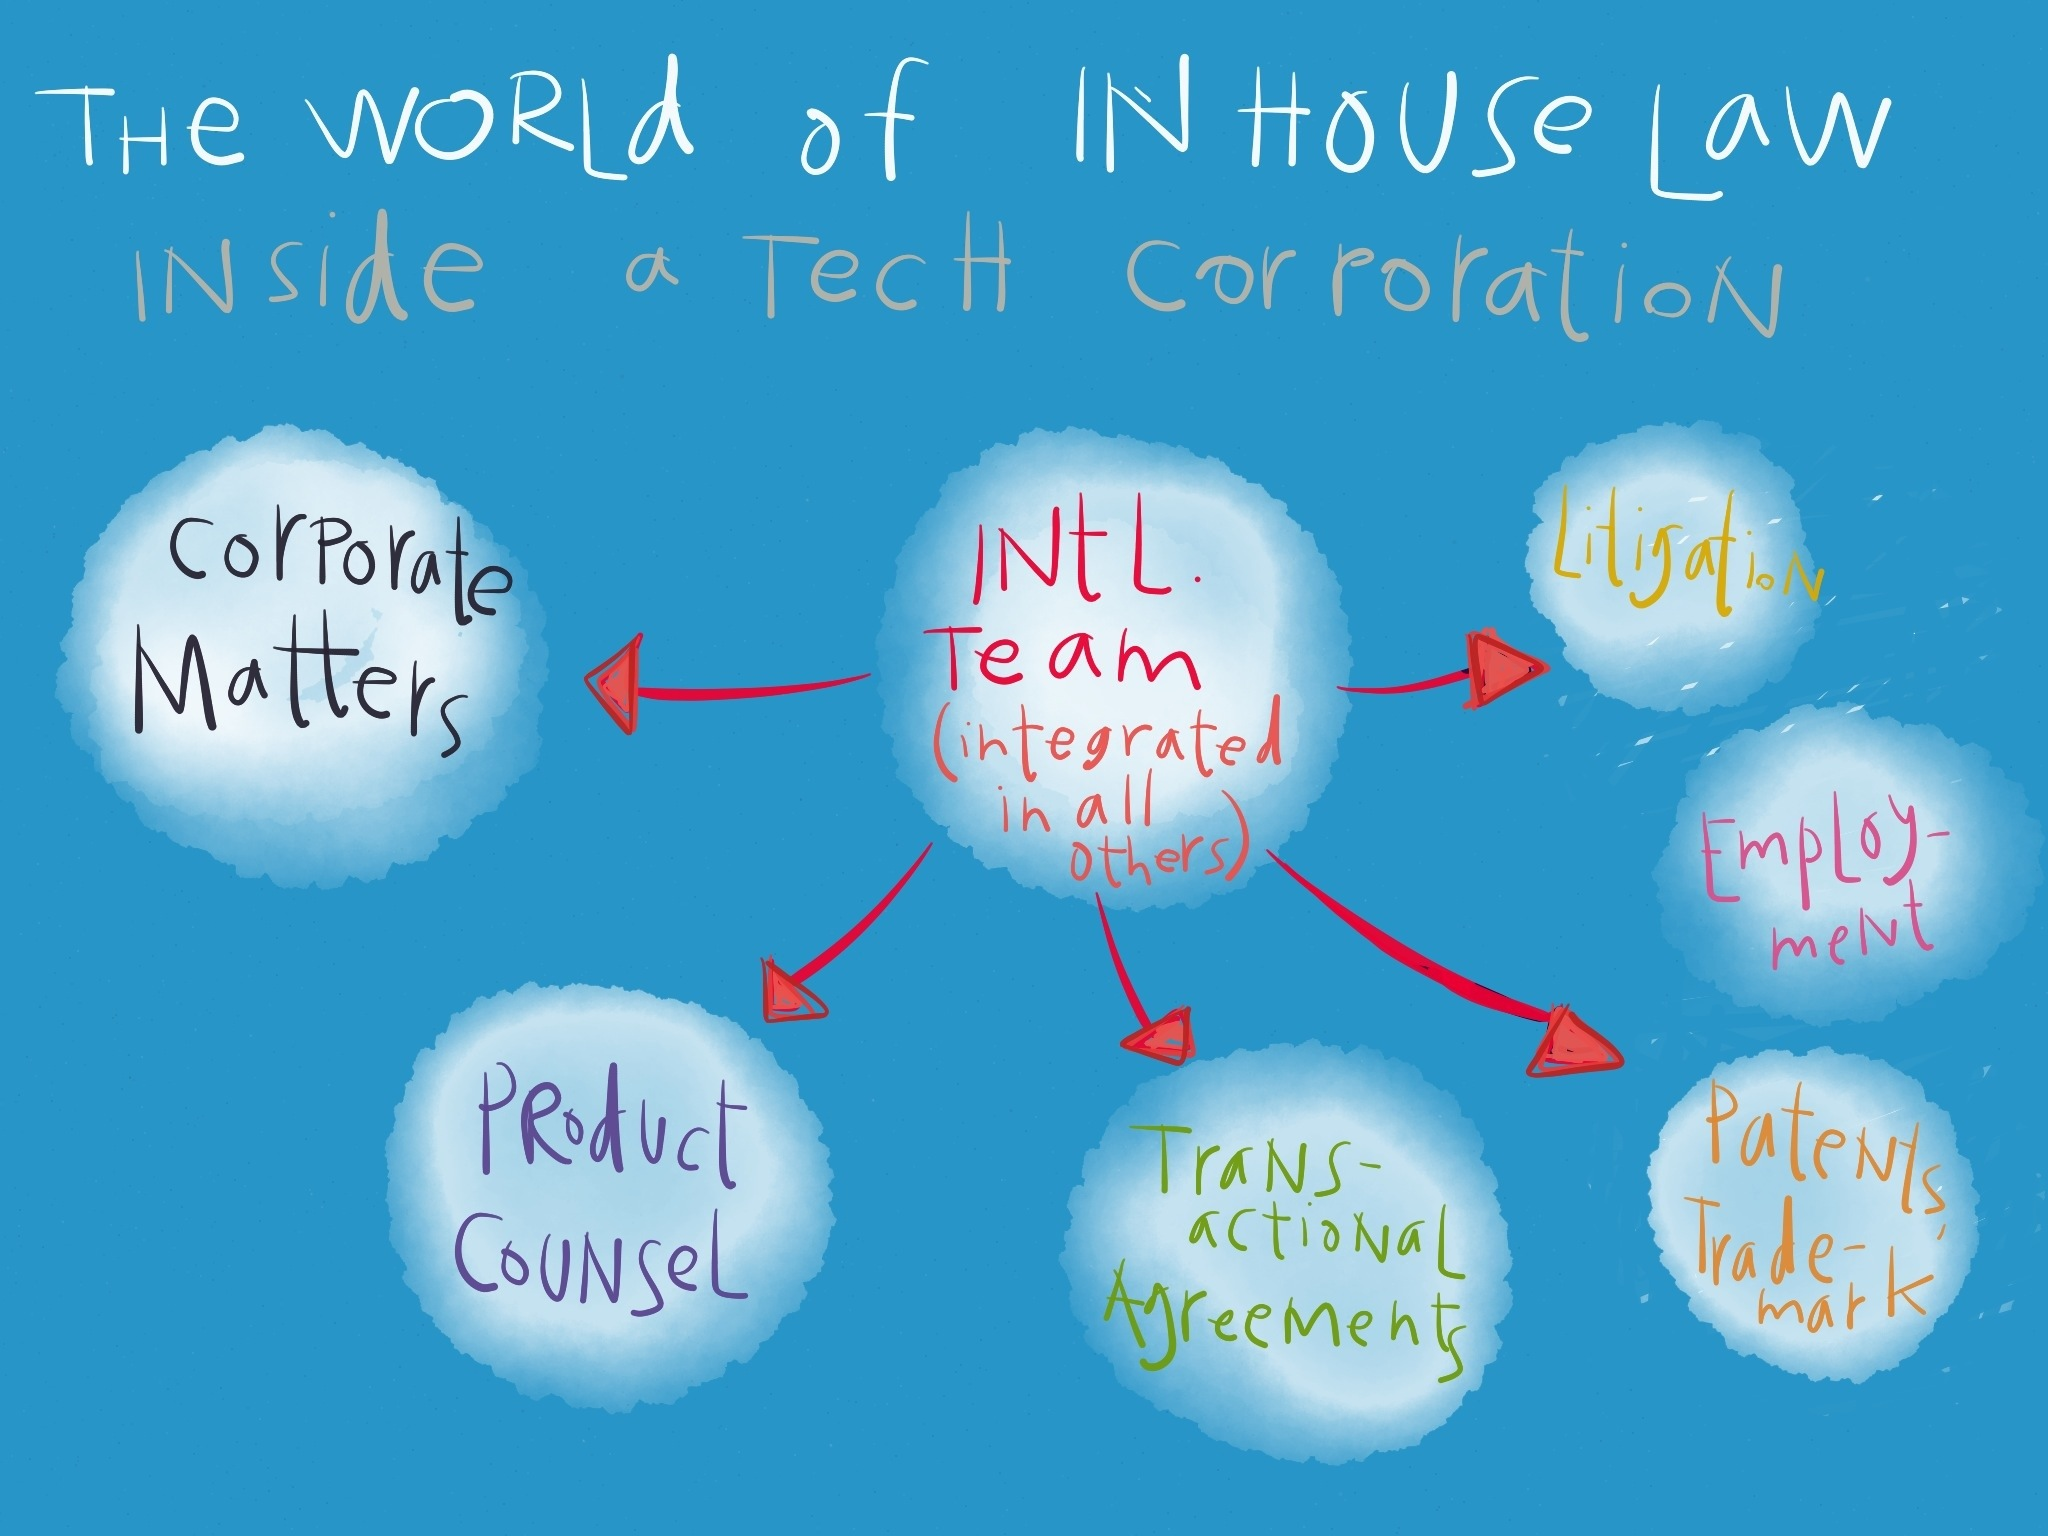 The world of IN House Counsel